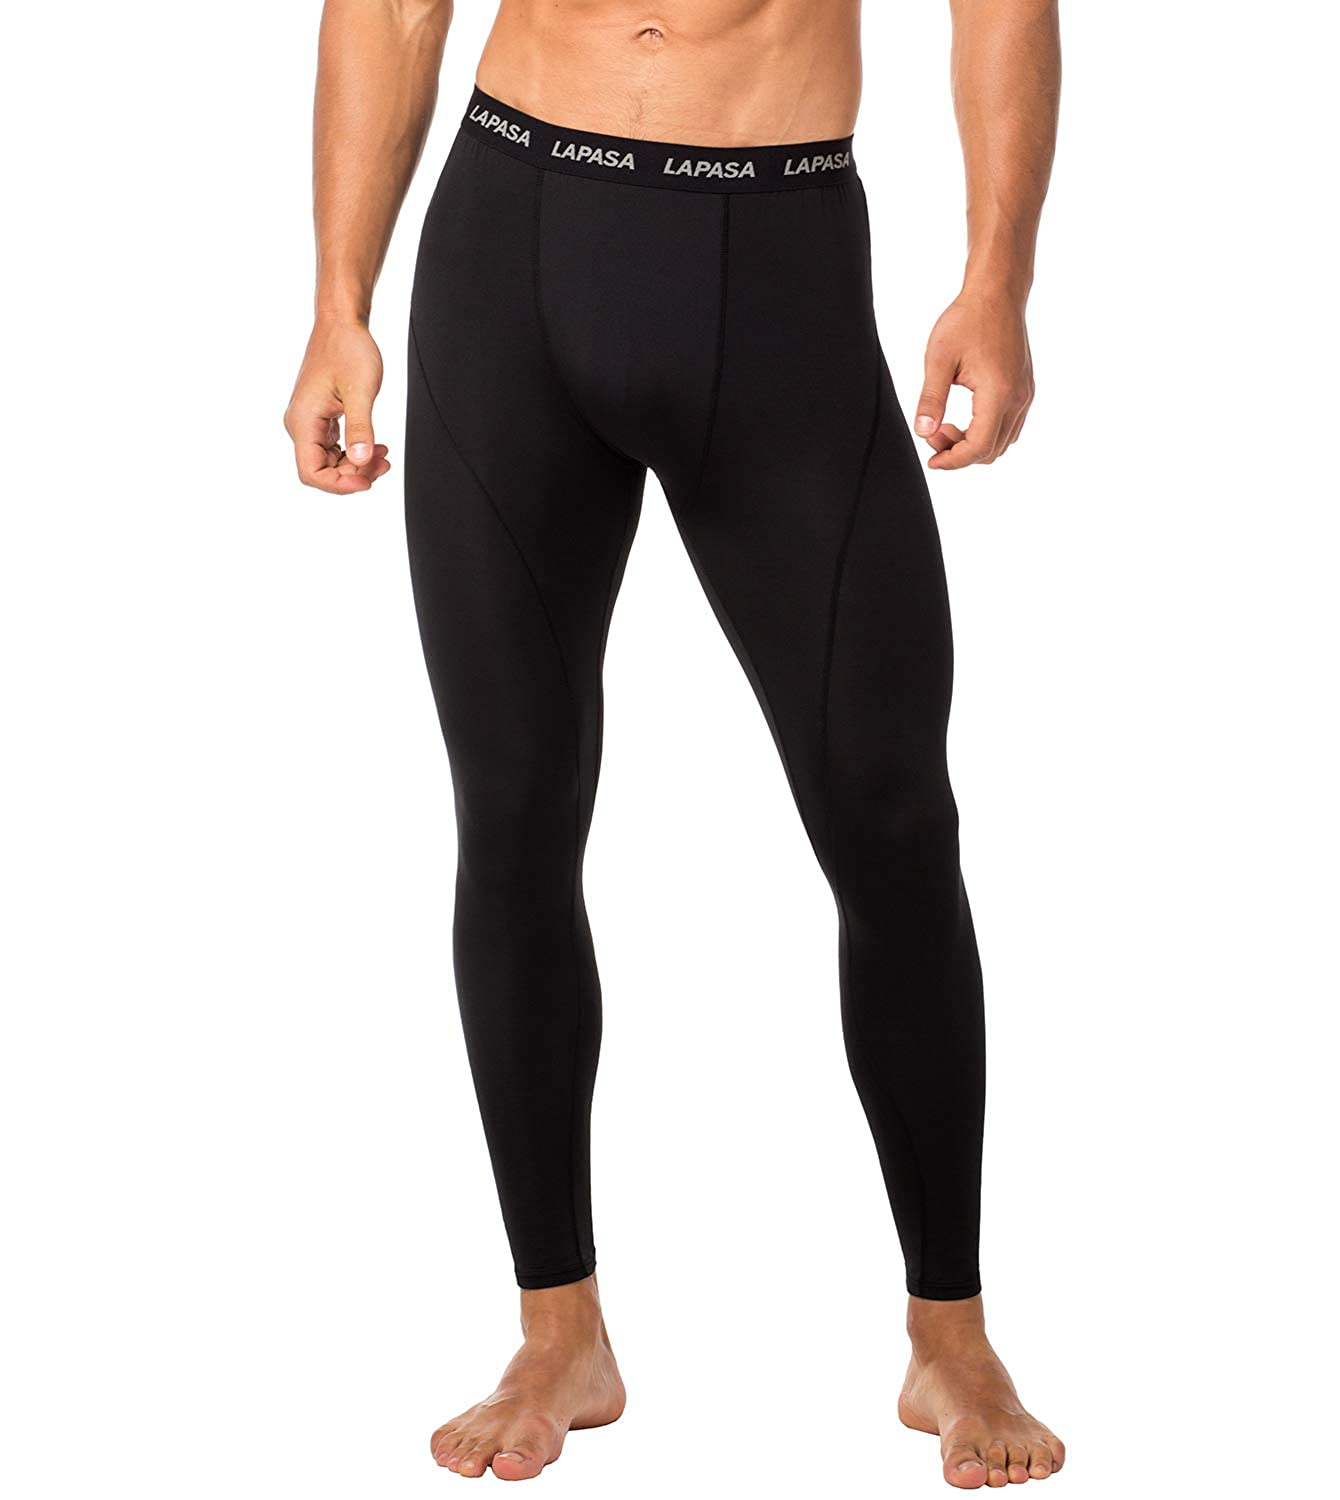 d91ff7b152132 LAPASA Men's Compression Tights - GRADUATED COMPRESSION - Running Workout  Legwarmer Gym Pants Training Leggings Drawstring Waistband Base Layer M18,  M48